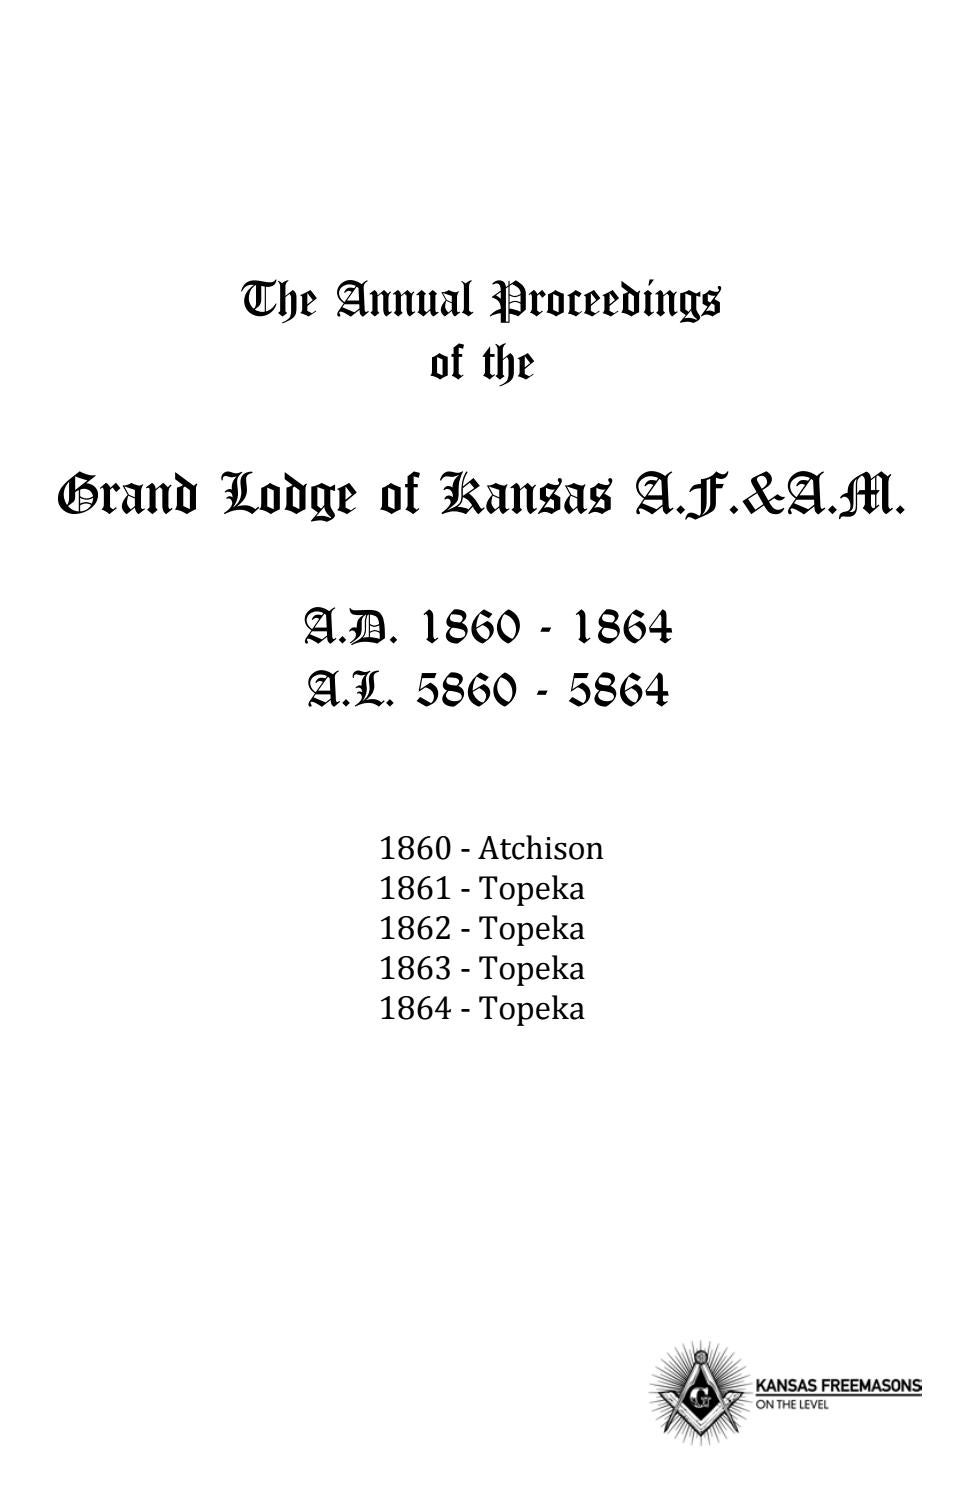 The Annual Proceedings of the Grand Lodge of Kansas AF&AM - 1860 to